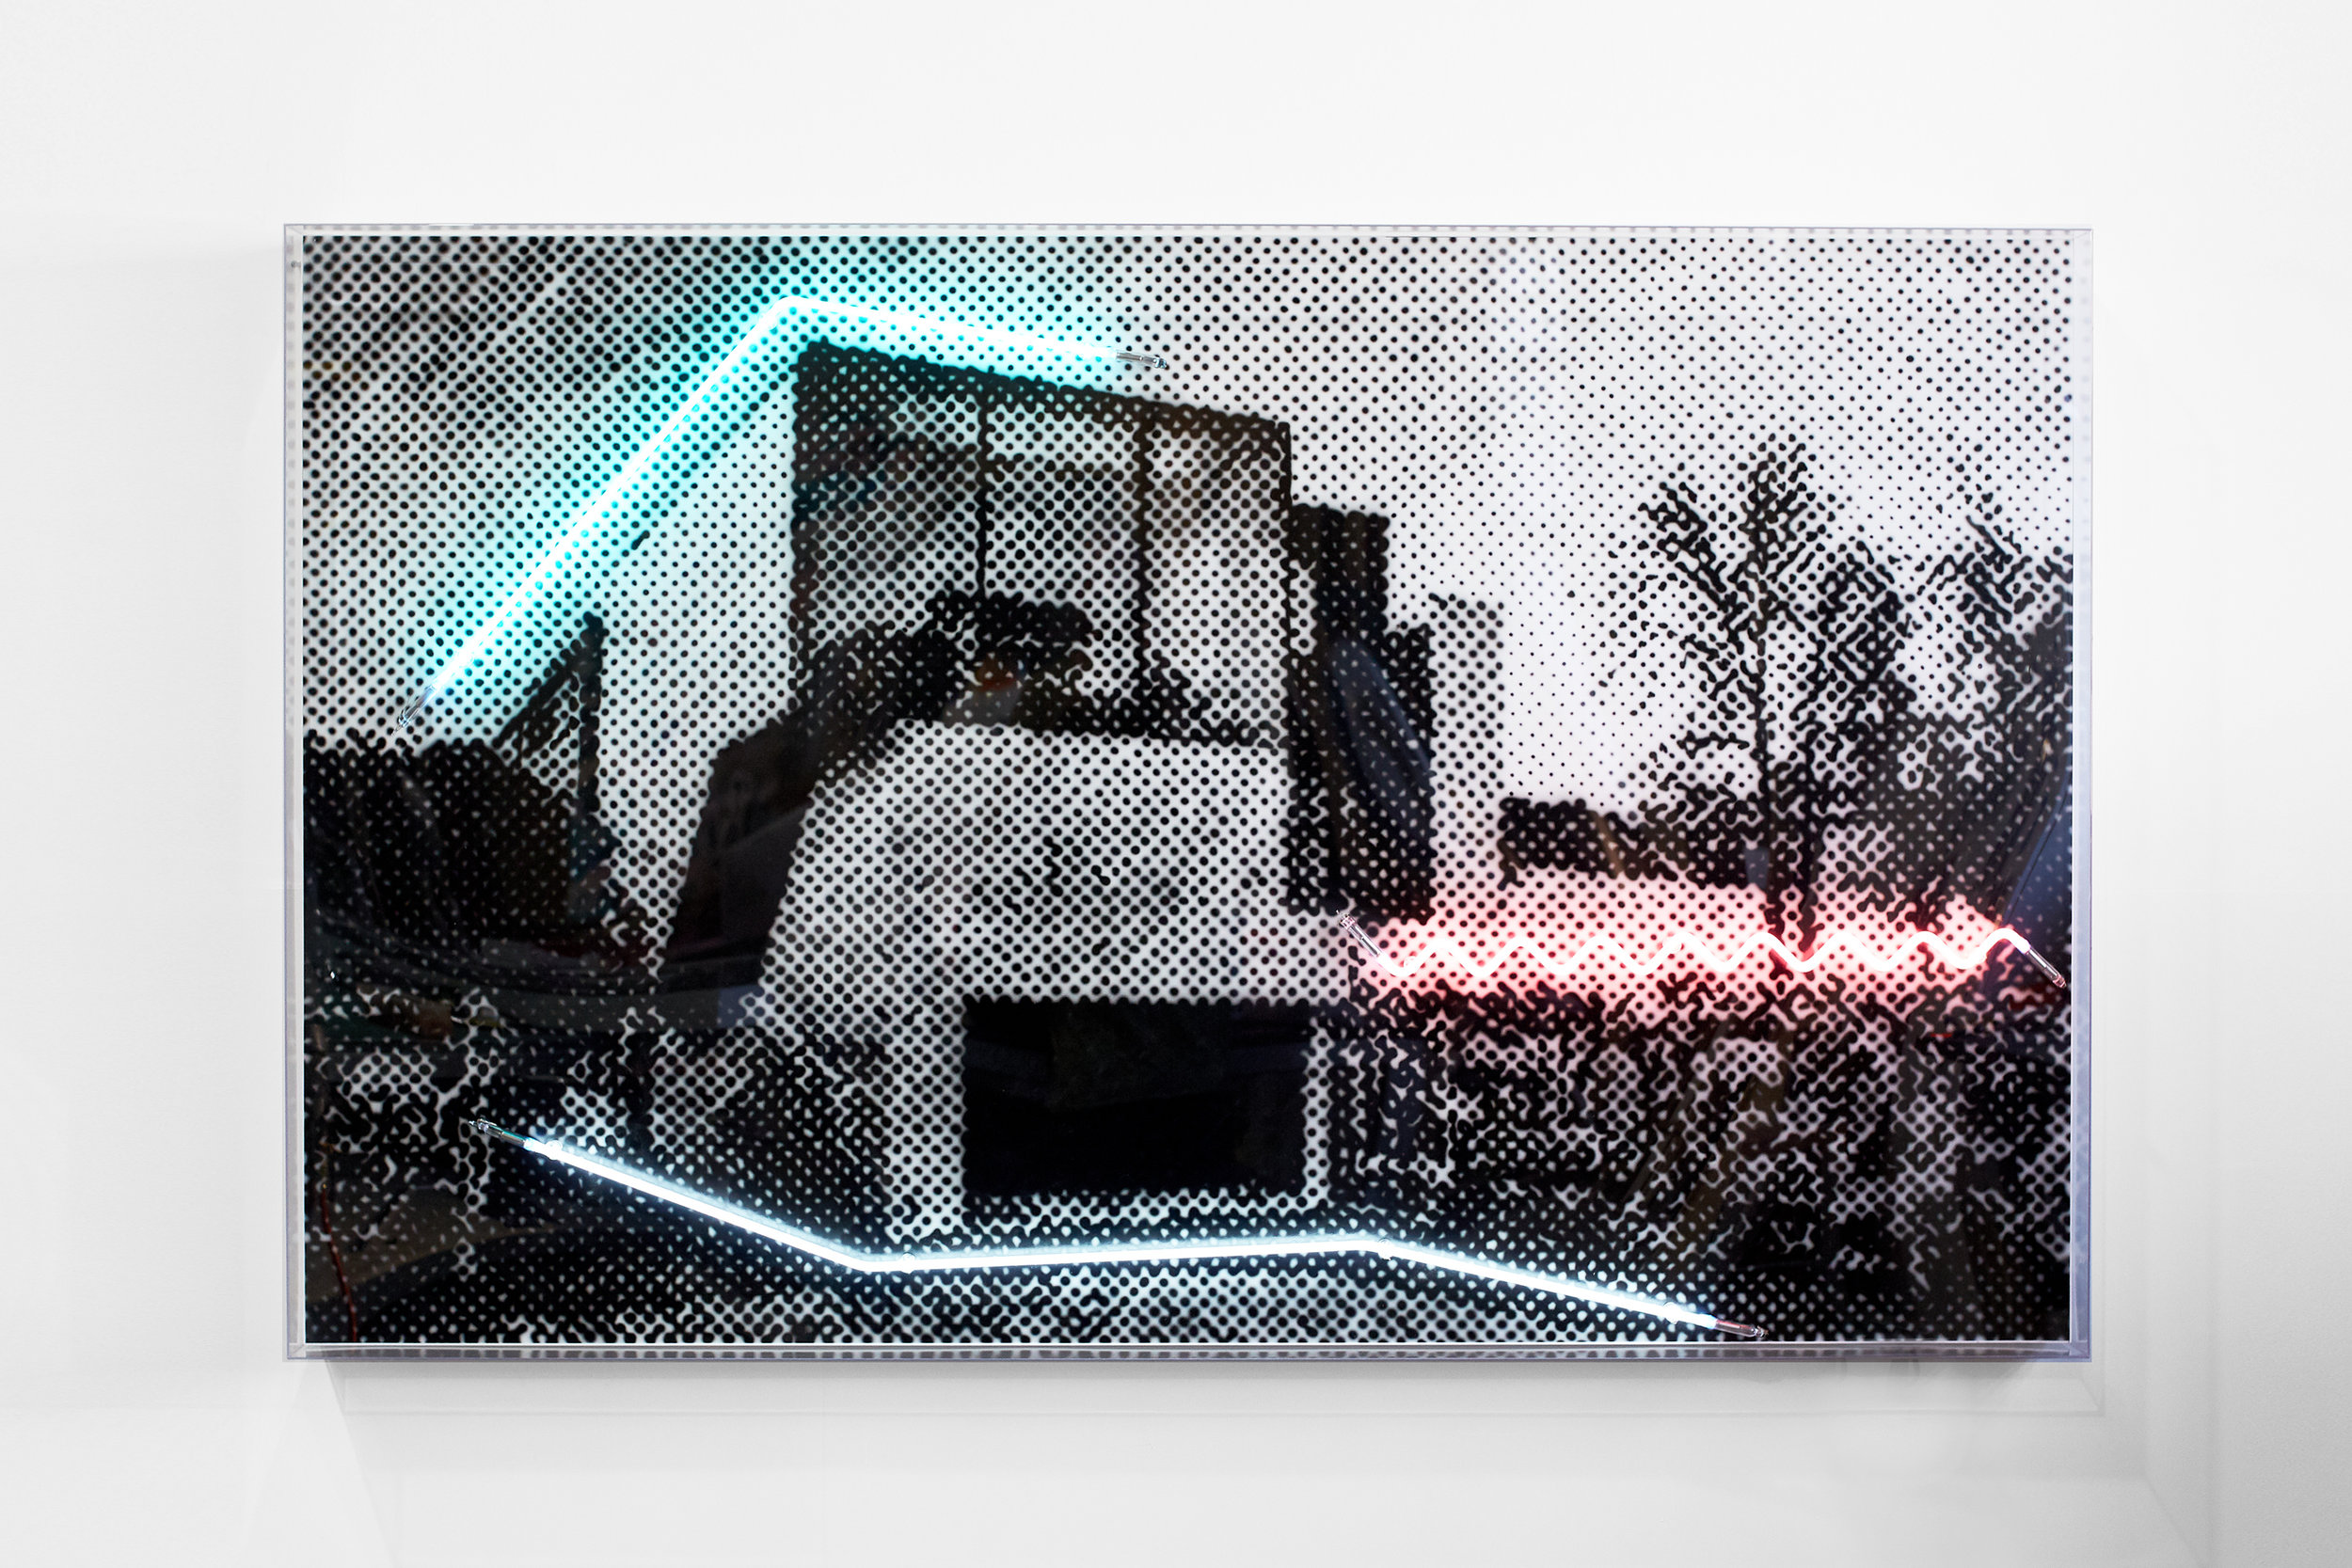 A house in an unforgiving laneway context, 2018  Airbrush acrylic polymer and neon on dibond, acrylic frame 125x200cm